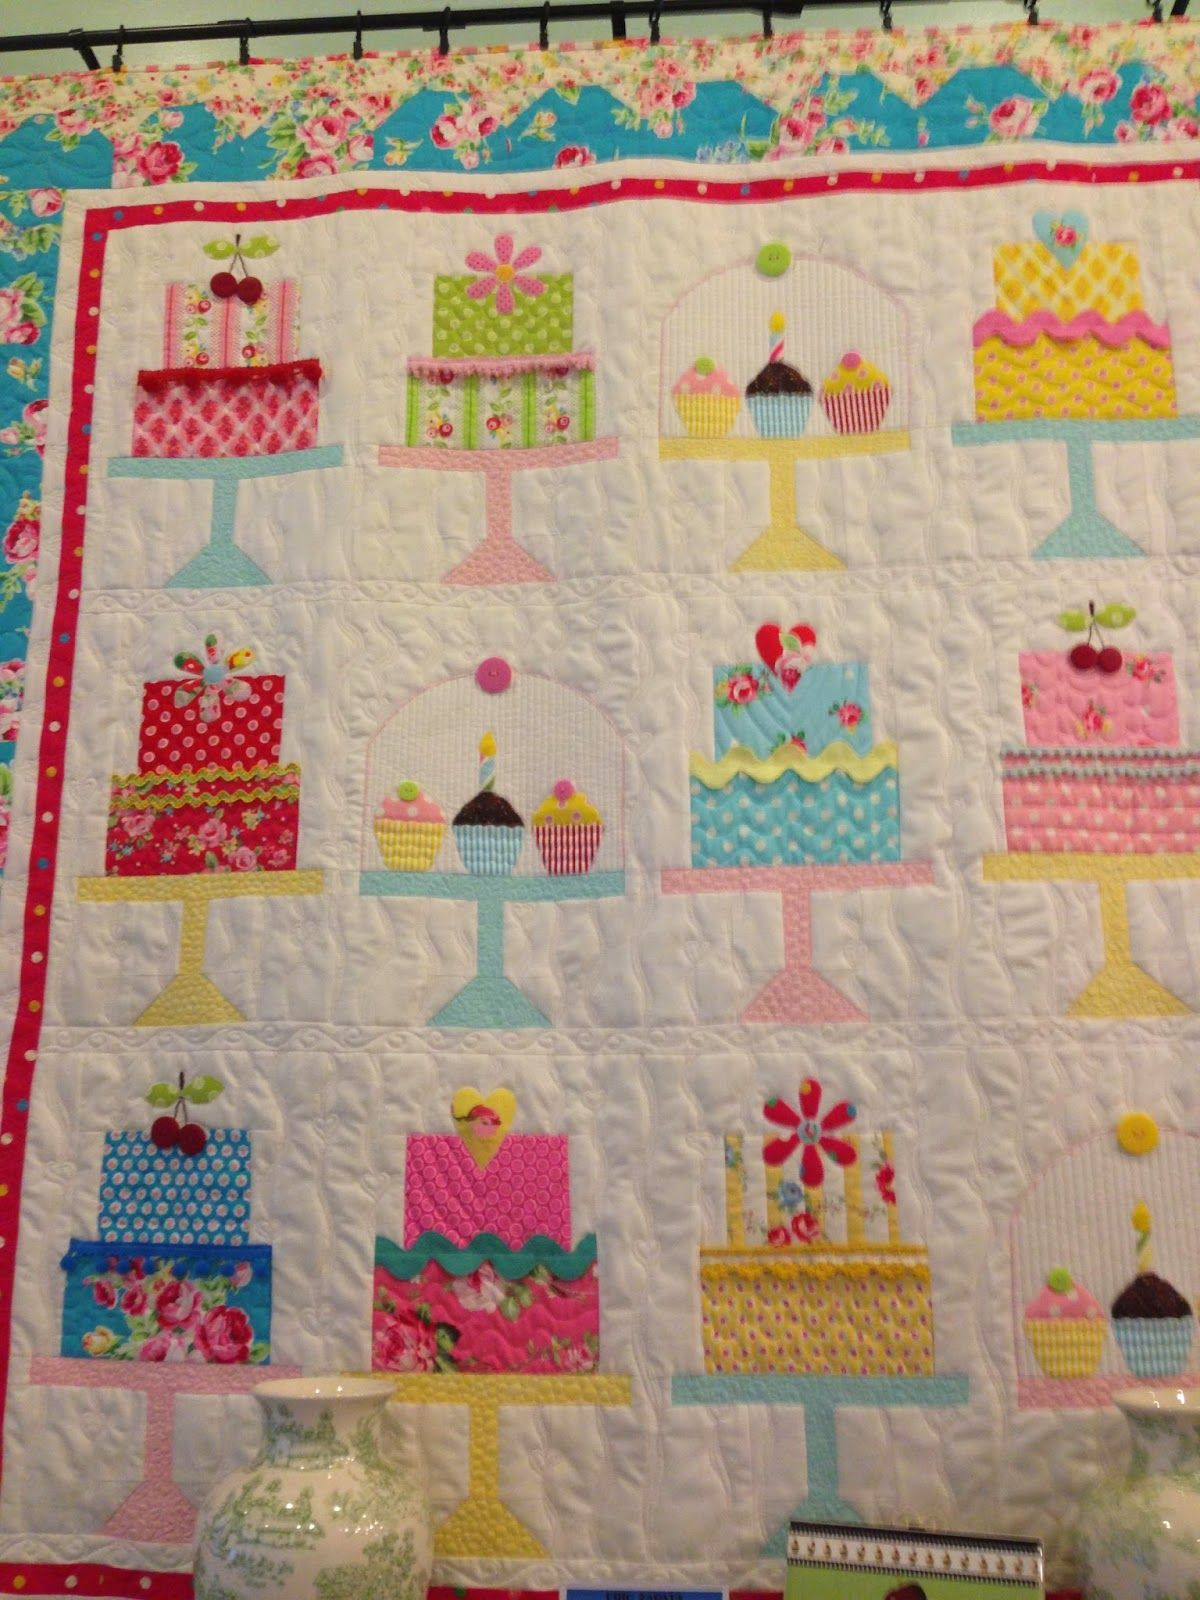 Adorable Birthday Cake Quilt From The Book Quilty Fun